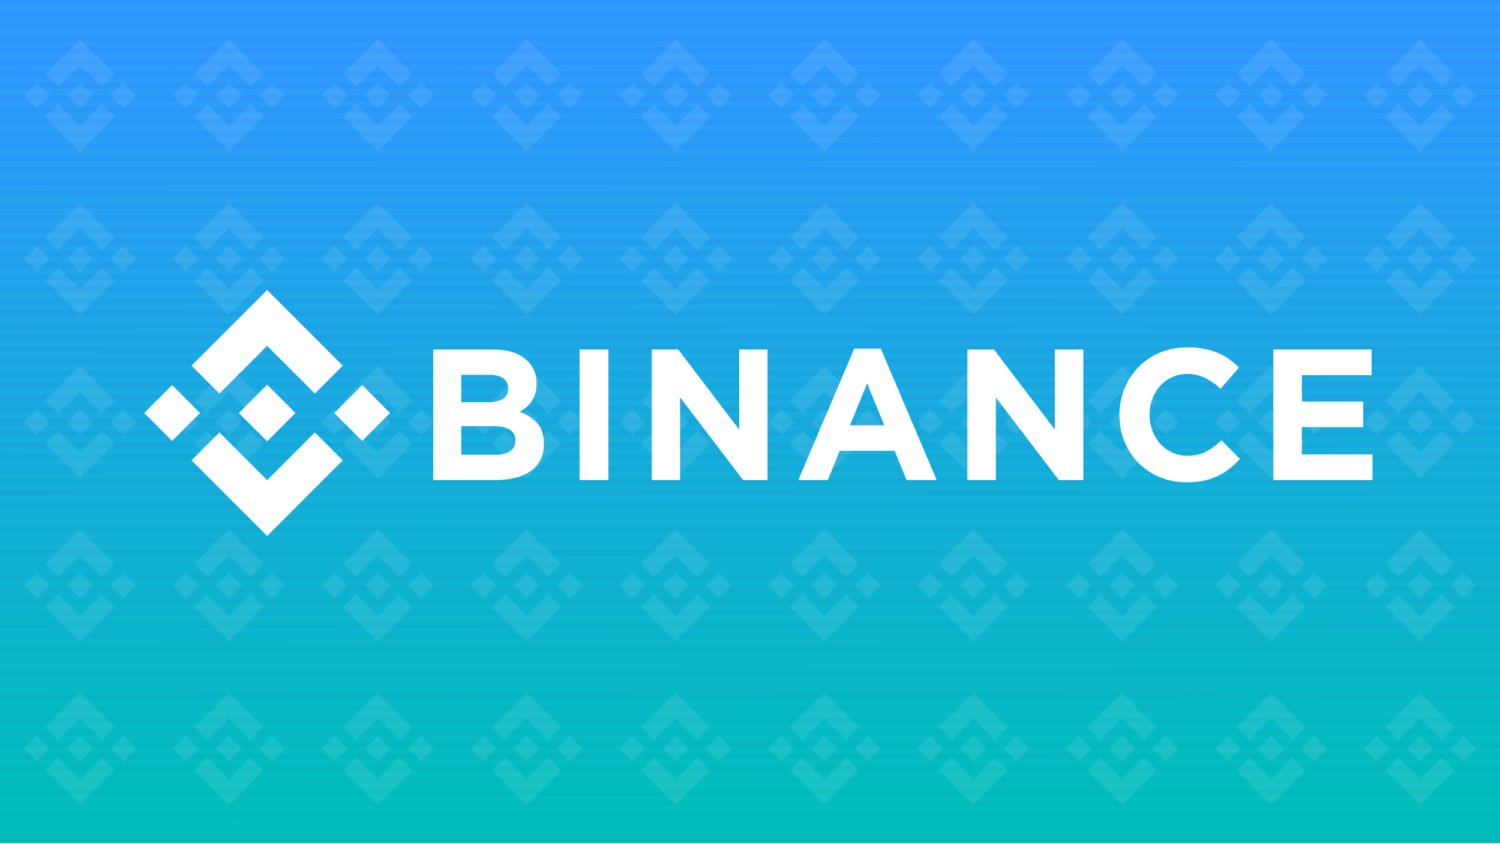 Binance puts up $100 million to attract DeFi projects to its new blockchain